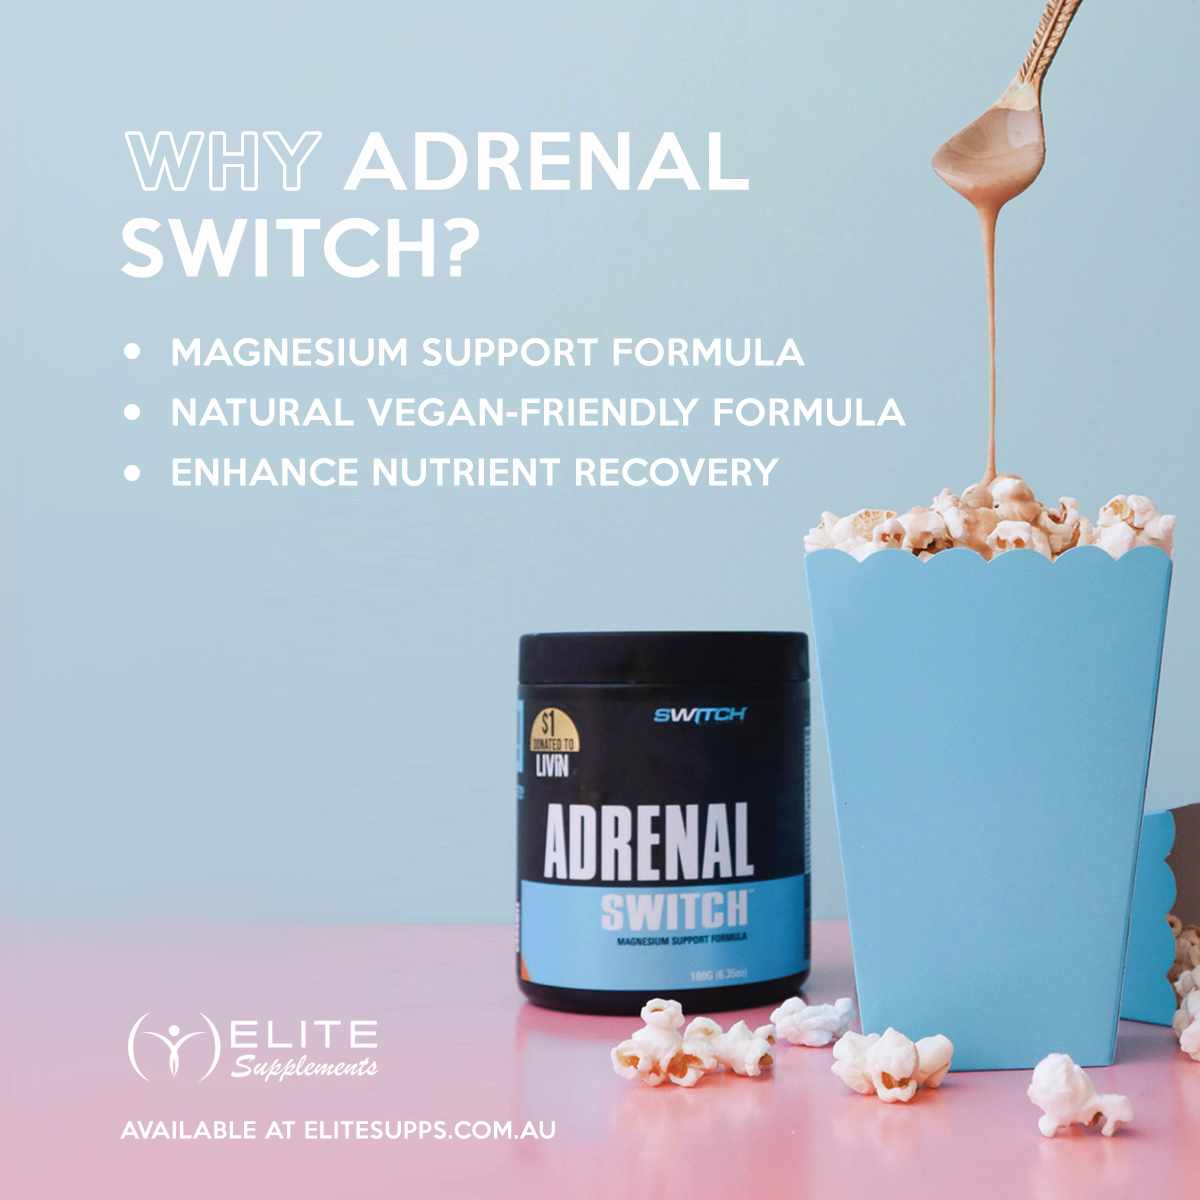 ADRENAL SWITCH #1 RECOVERY SUPPLEMENT